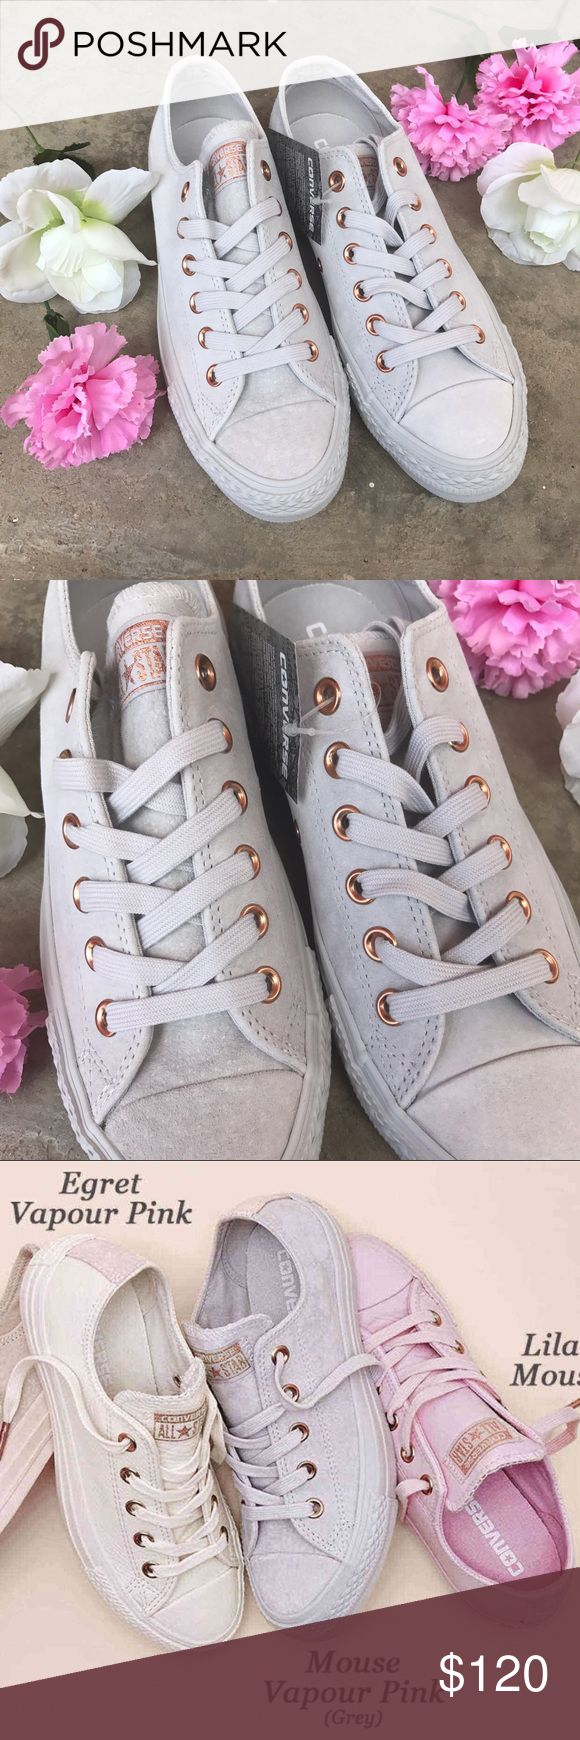 Mouse Vapour Pink Converse Exclusives✨ These beautiful converse are LIMITED AND RARE.    Signature all star low silhouette  Exclusive mouse grey suede upper with vapour pink heel insert  Rose Gold metal eyelets   A MUST HAVE!   Size 7.5 Women's  or 5.5 UK  Converse Shoes Sneakers